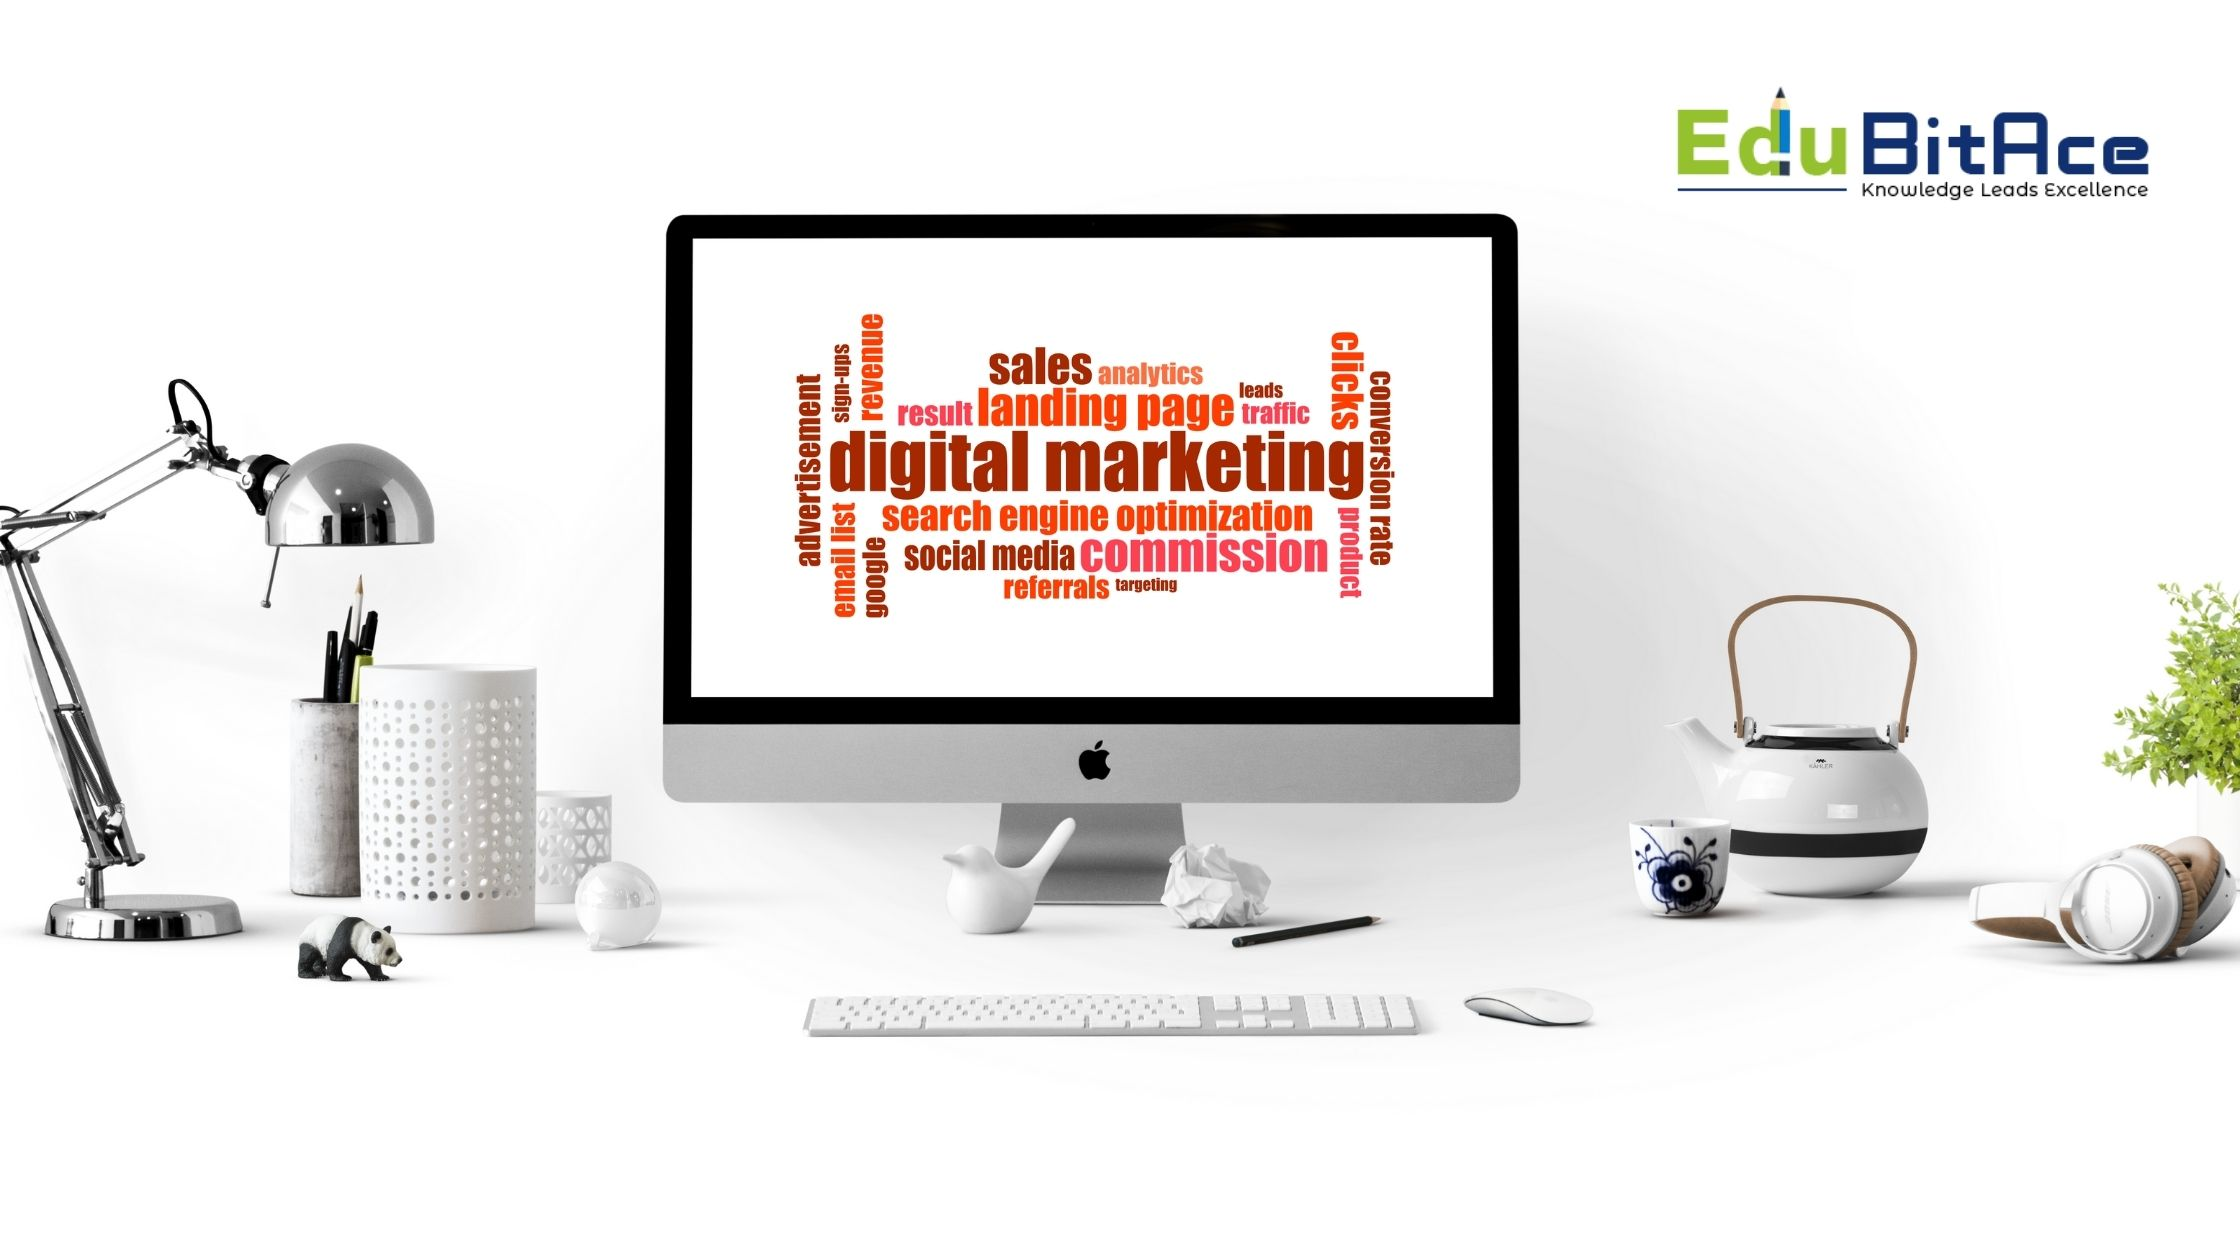 Why digital marketing is one of the best career options?